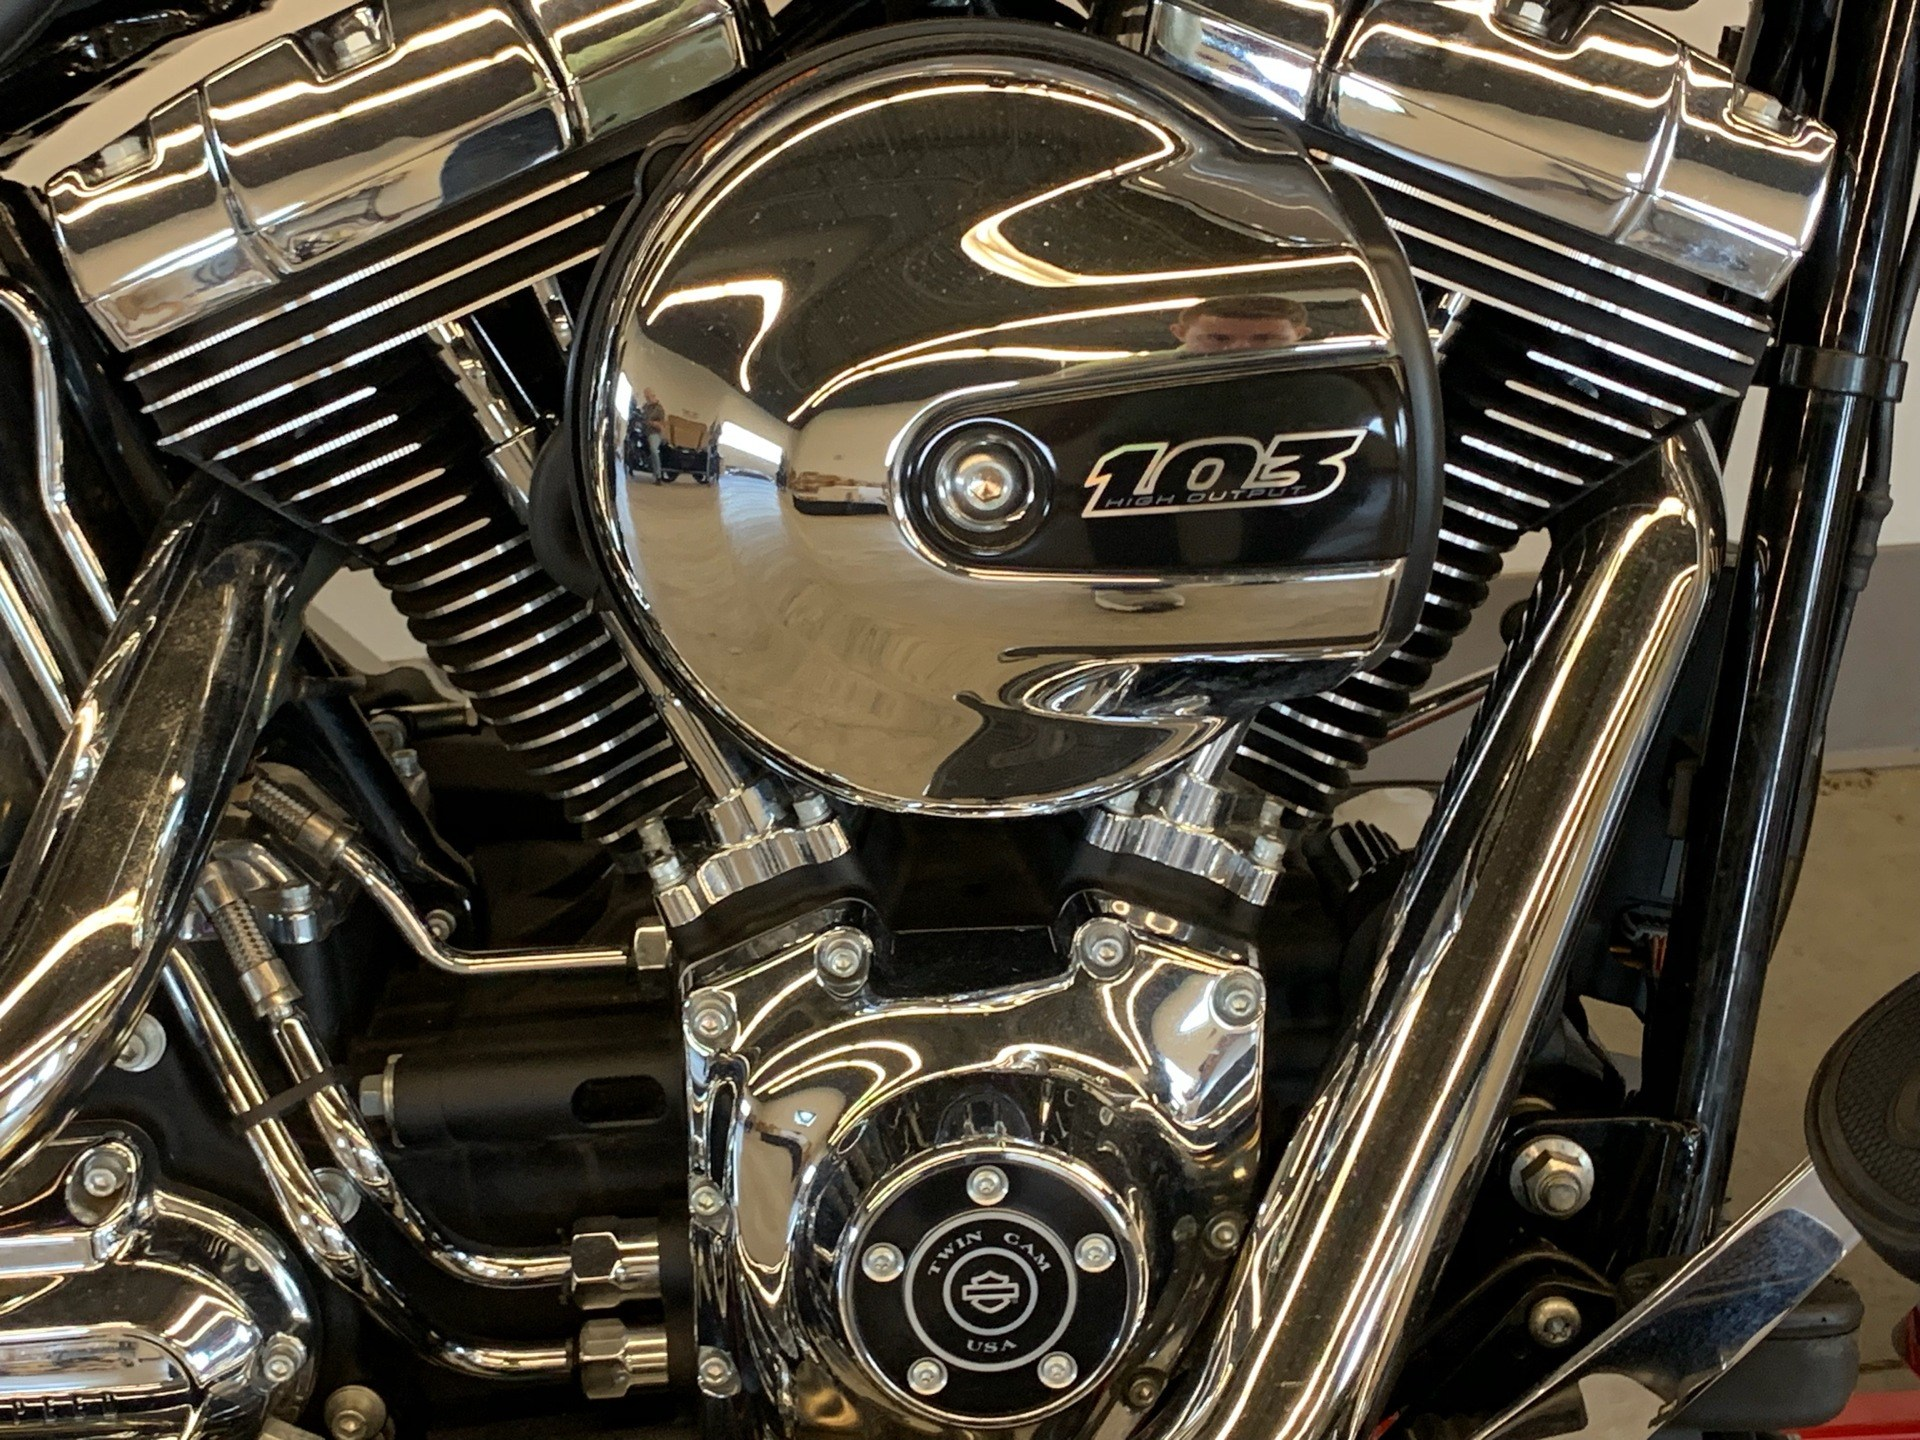 2016 Harley-Davidson Heritage Softail® Classic in Flint, Michigan - Photo 8